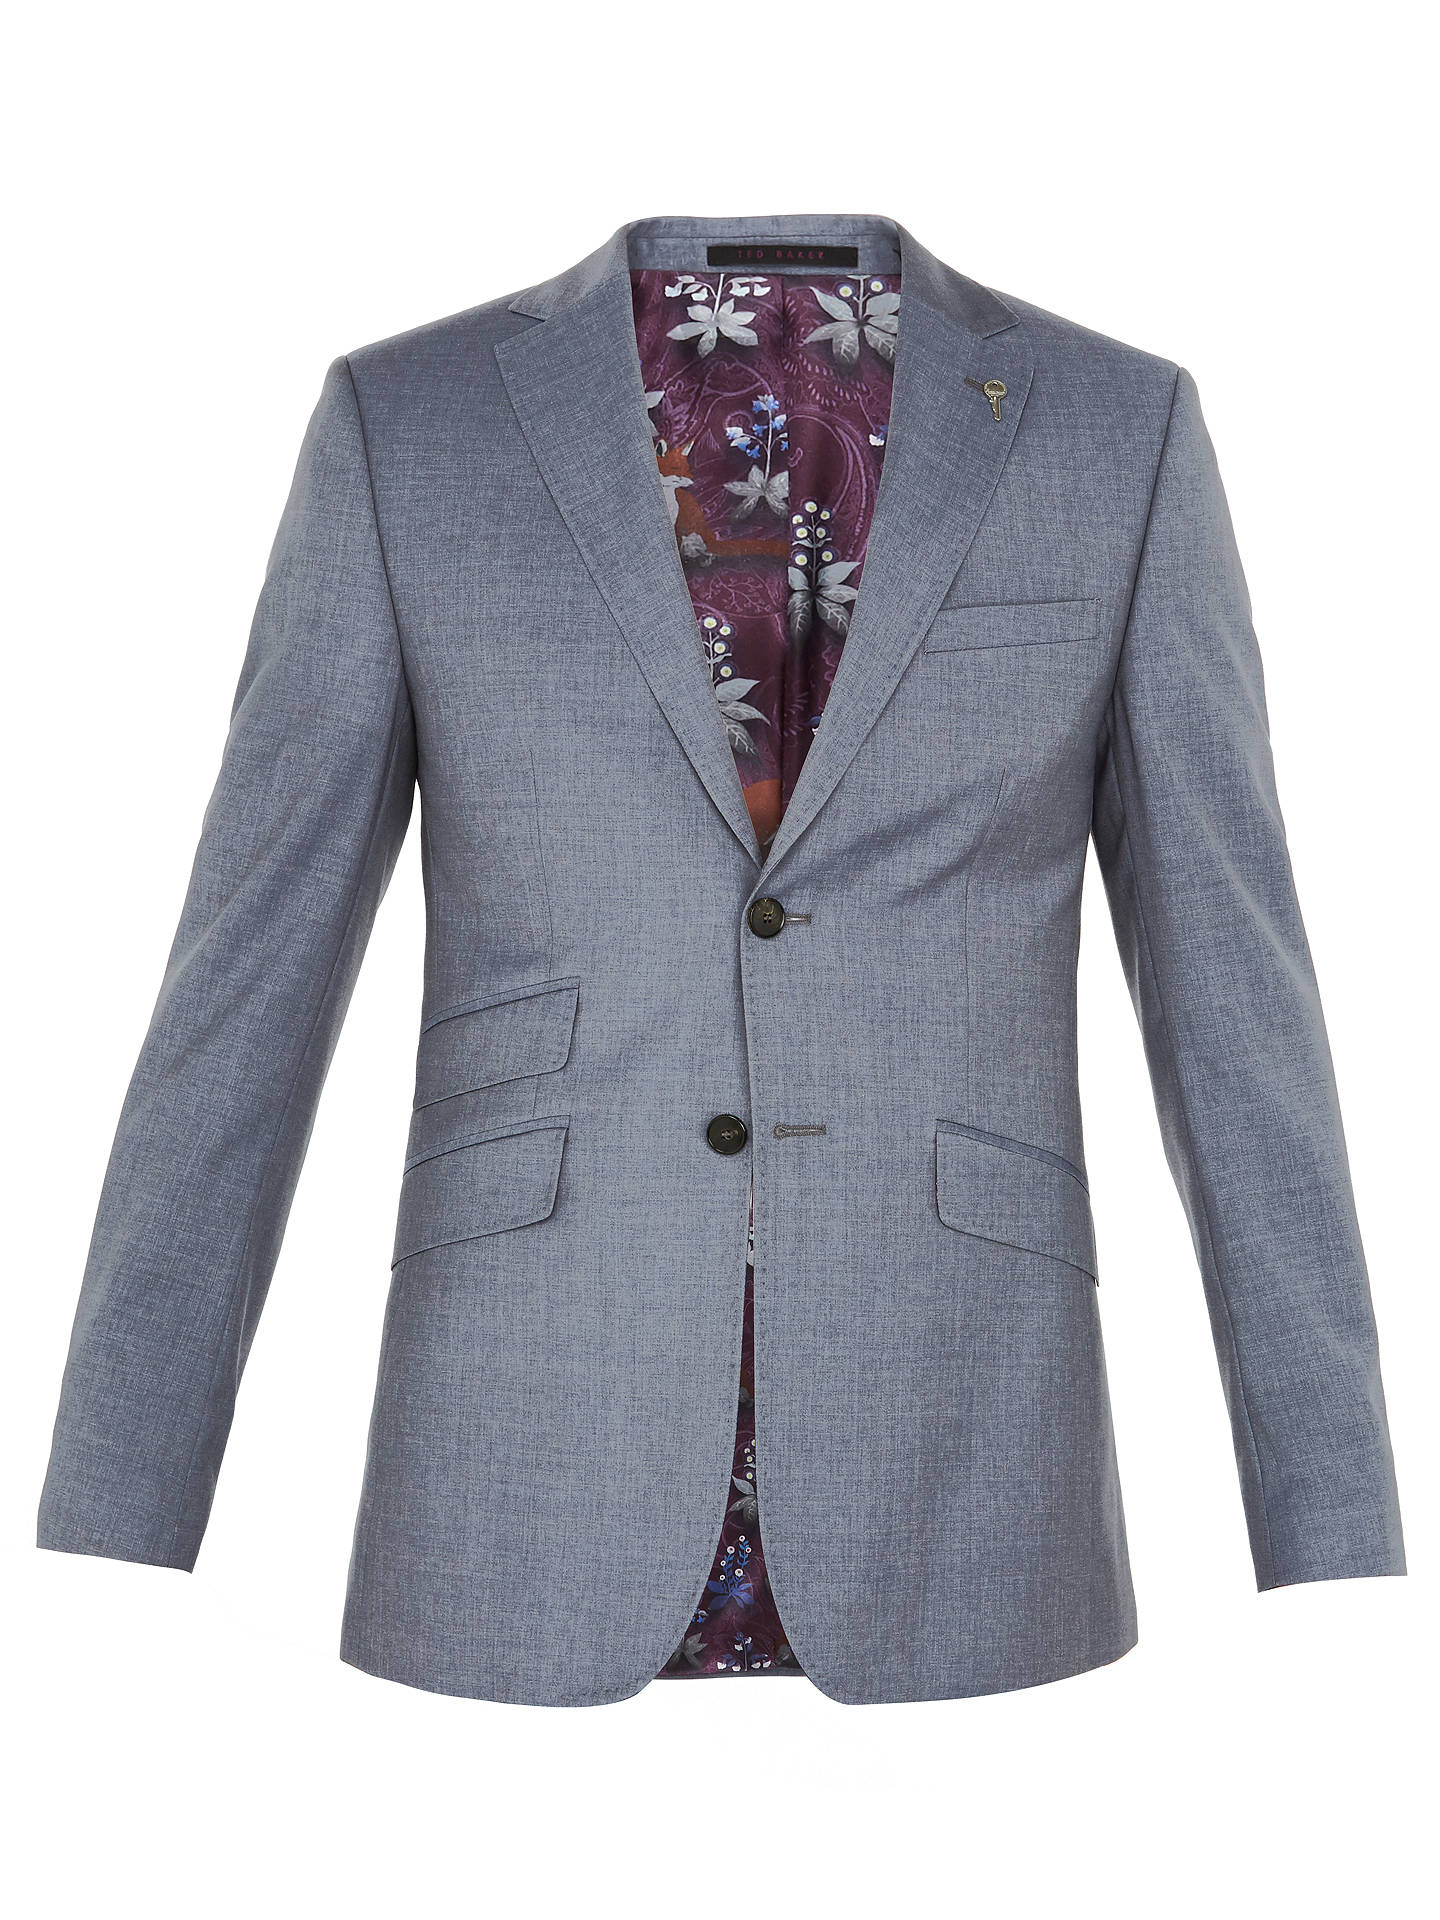 BuyTed Baker Tenetoj Sterling Plain Wool Tailored Suit Jacket, Light Blue, 38S Online at johnlewis.com